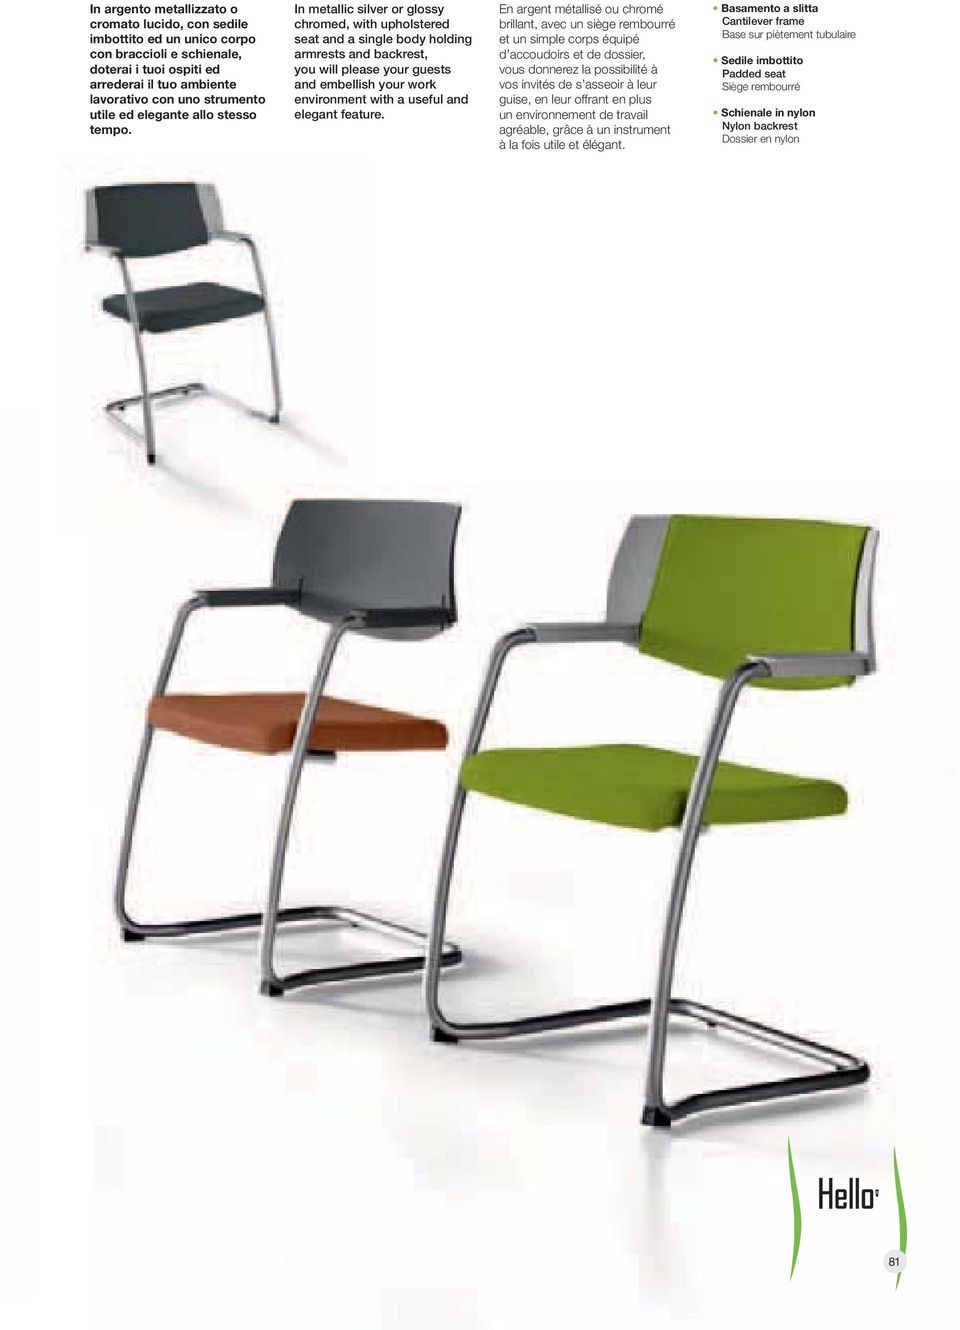 In metallic silver or glossy chromed, with upholstered seat and a single body holding armrests and backrest, you will please your guests and embellish your work environment with a useful and elegant